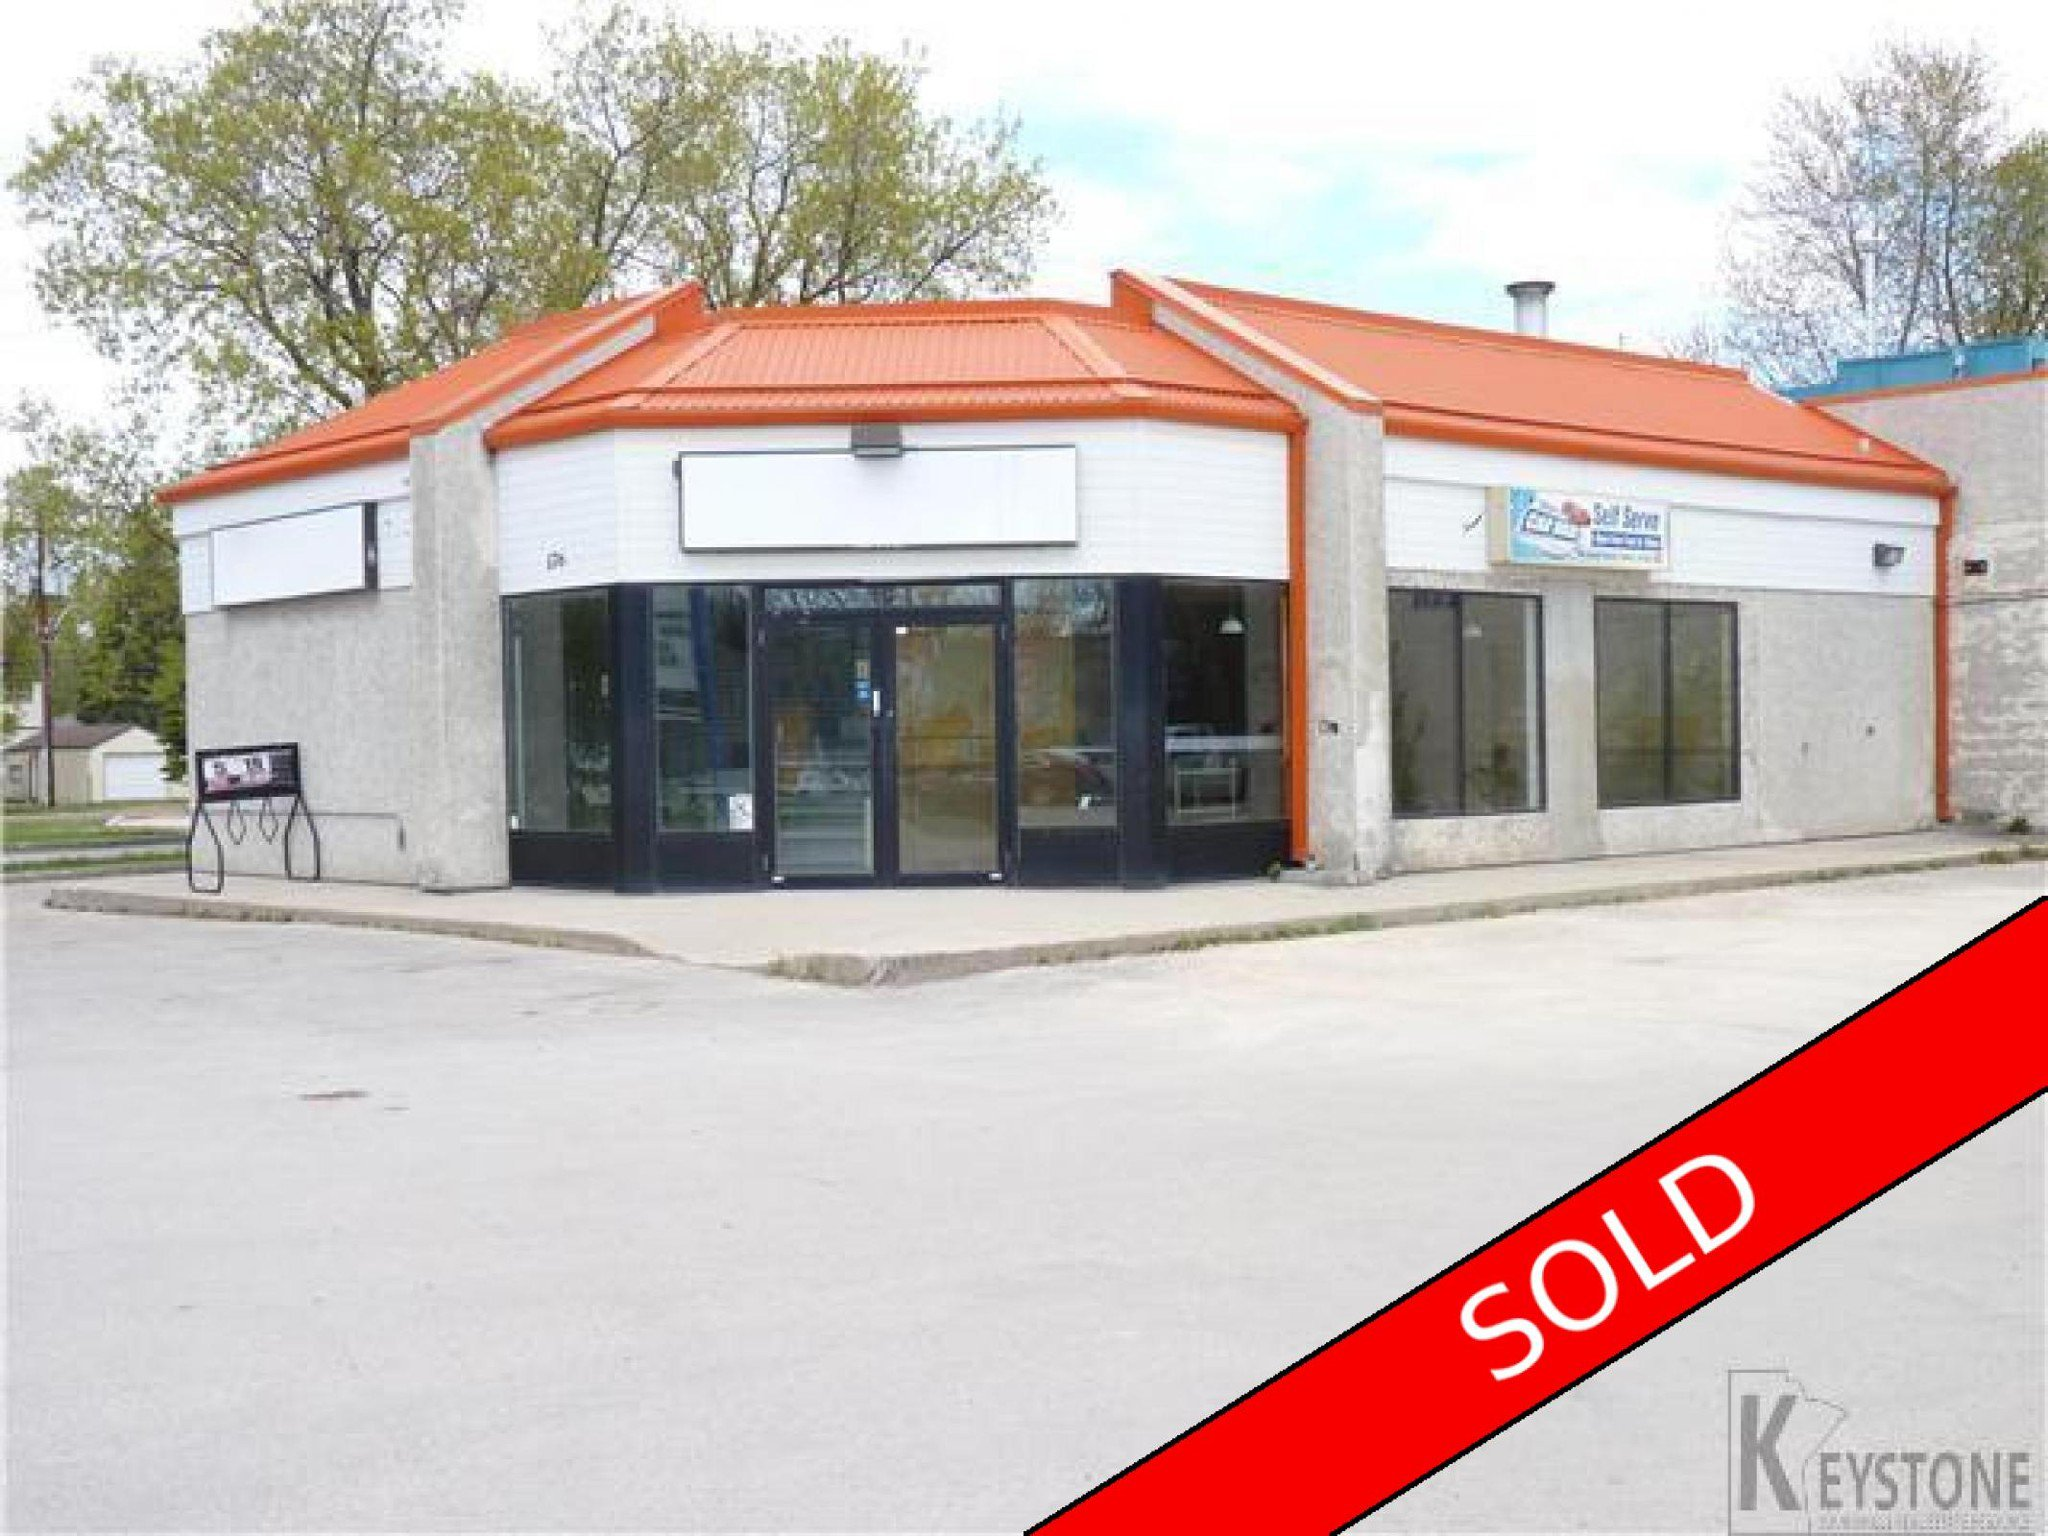 Main Photo: 176 Main Street in Selkirk, MB r1a2s6: Business for sale : MLS®# 1711678